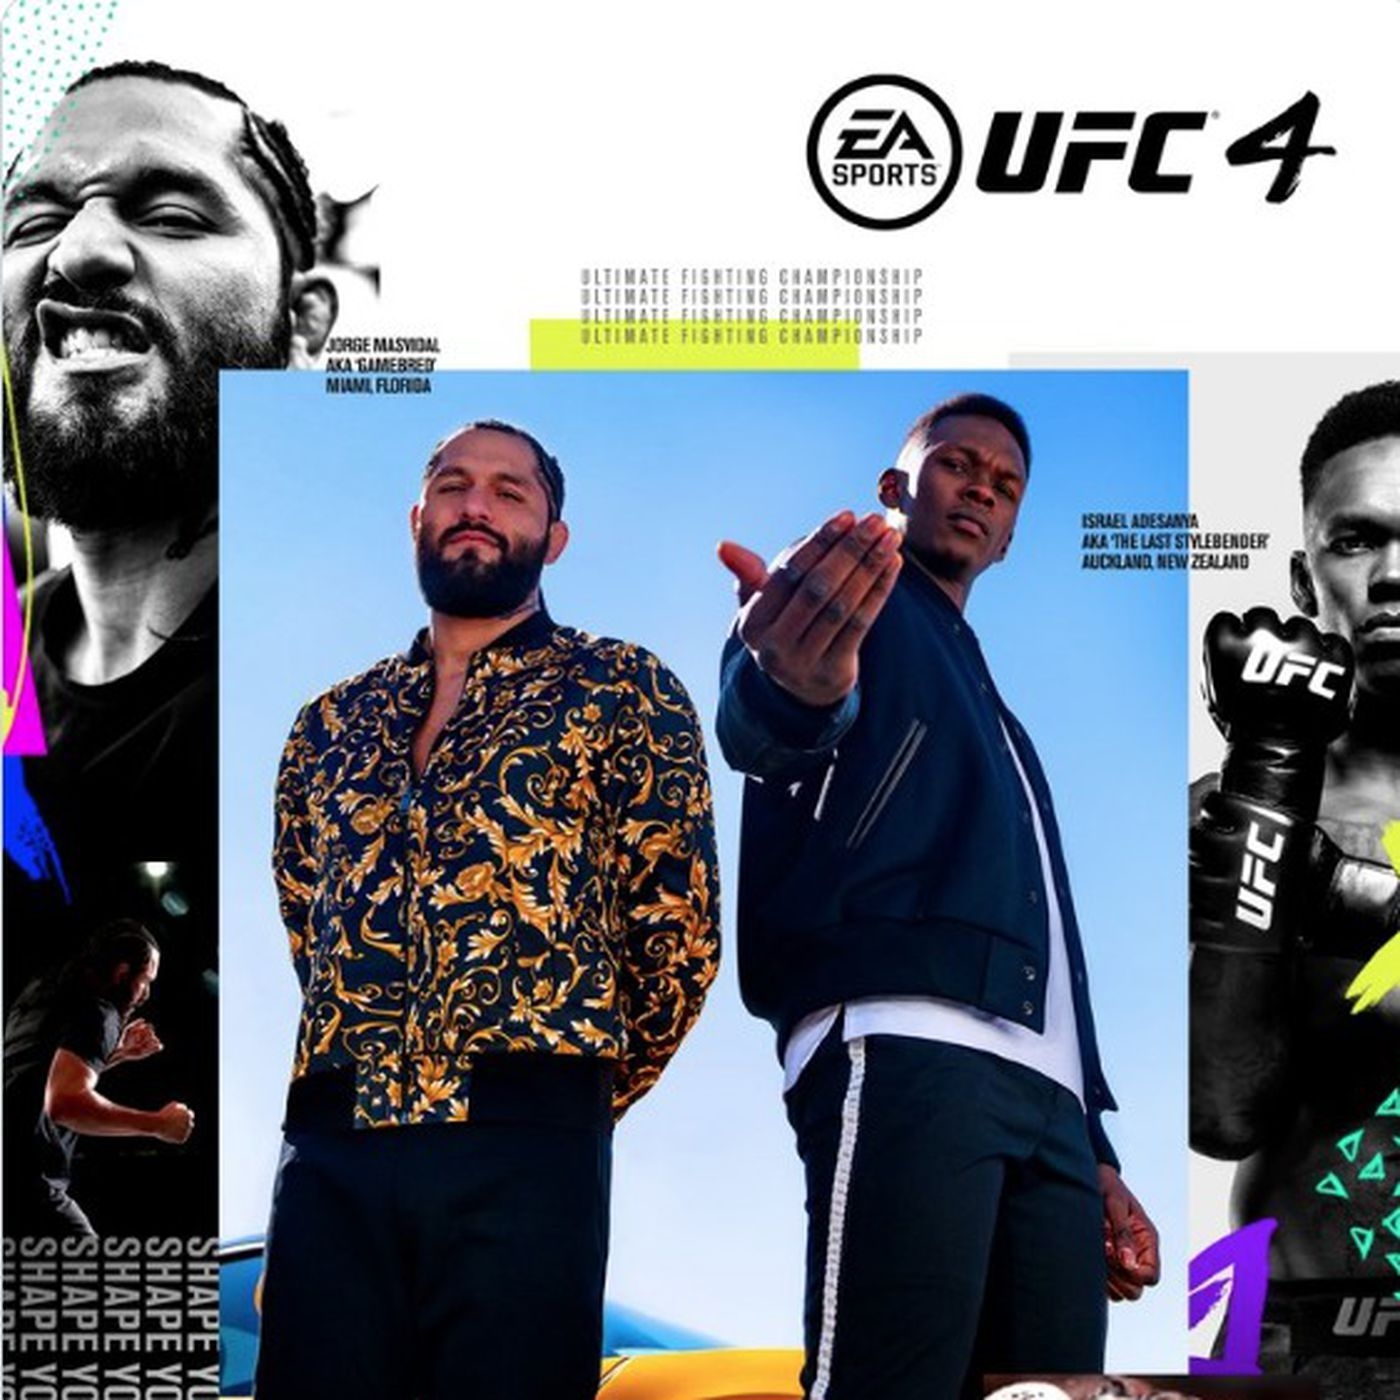 ufc-4-ps4-one